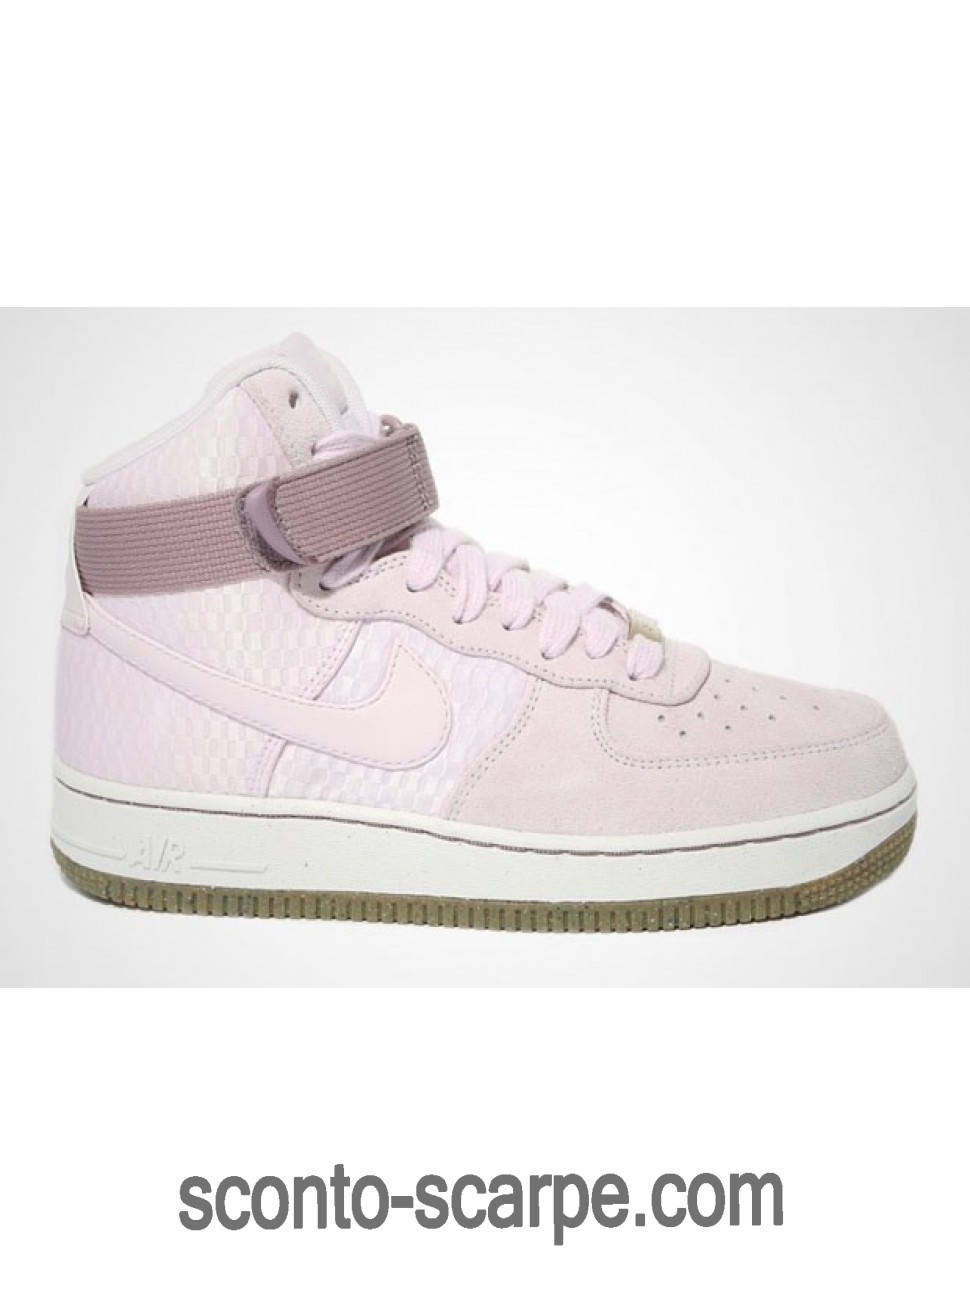 Nike Air Force 1 High Bleached Lilla/Bleached Lilla 654440-500 Elenco Sconti